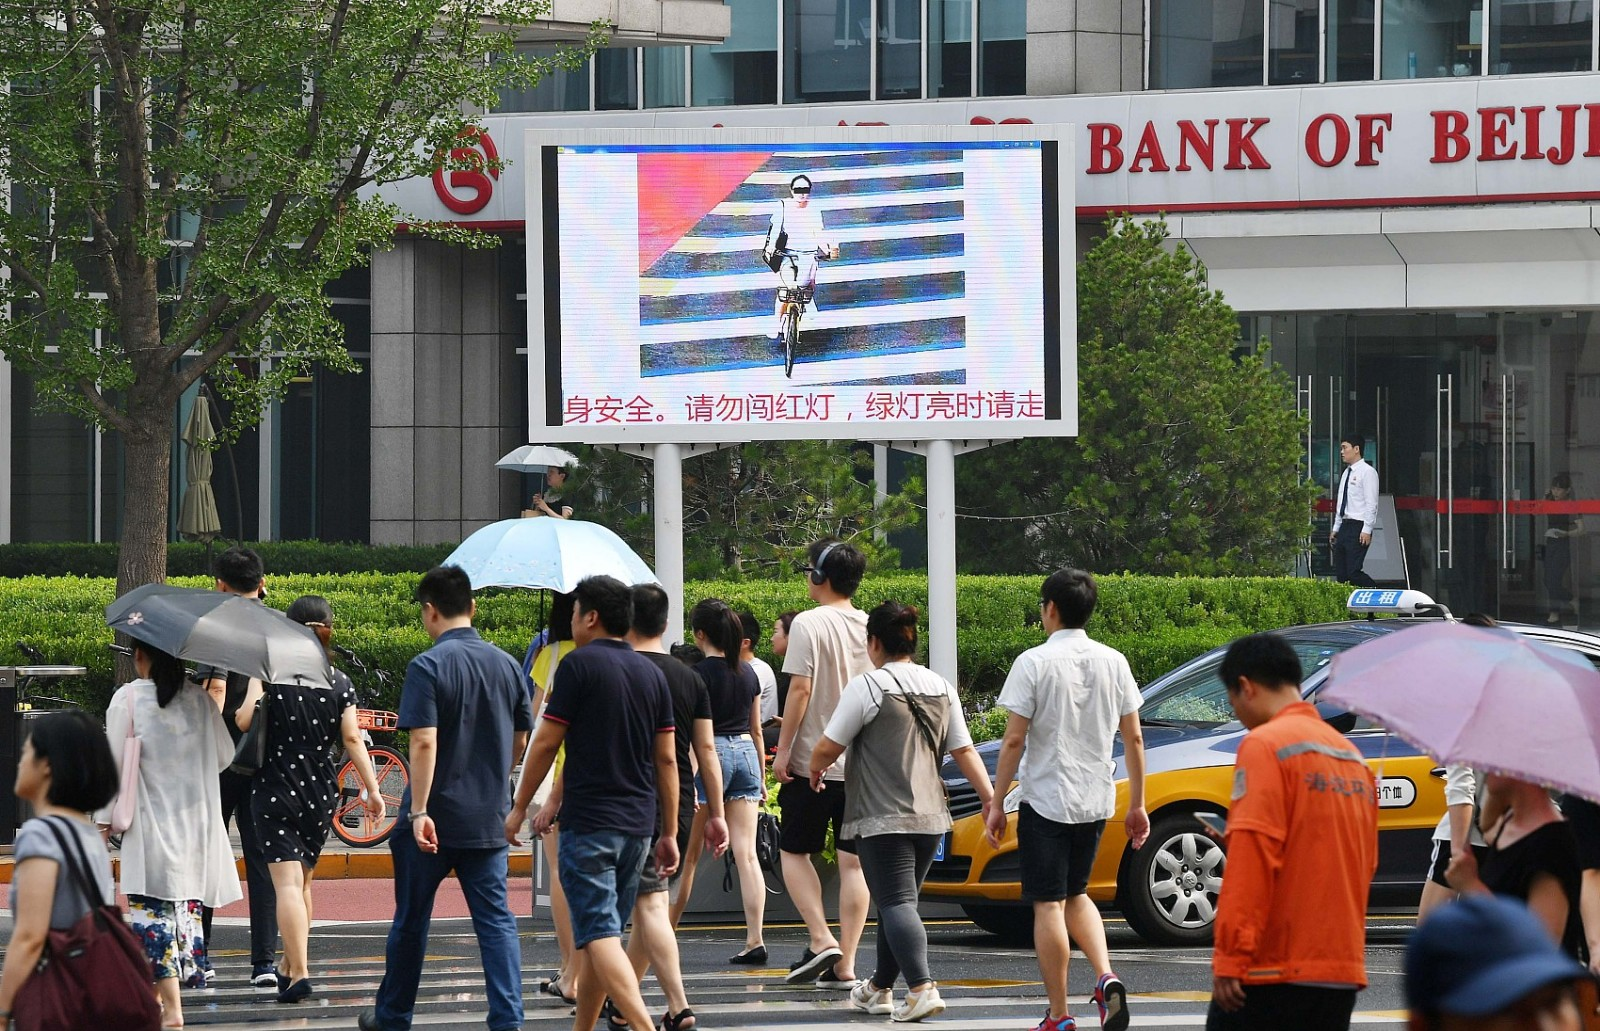 Facial recognition, huge public screens used to shame jaywalkers in Beijing